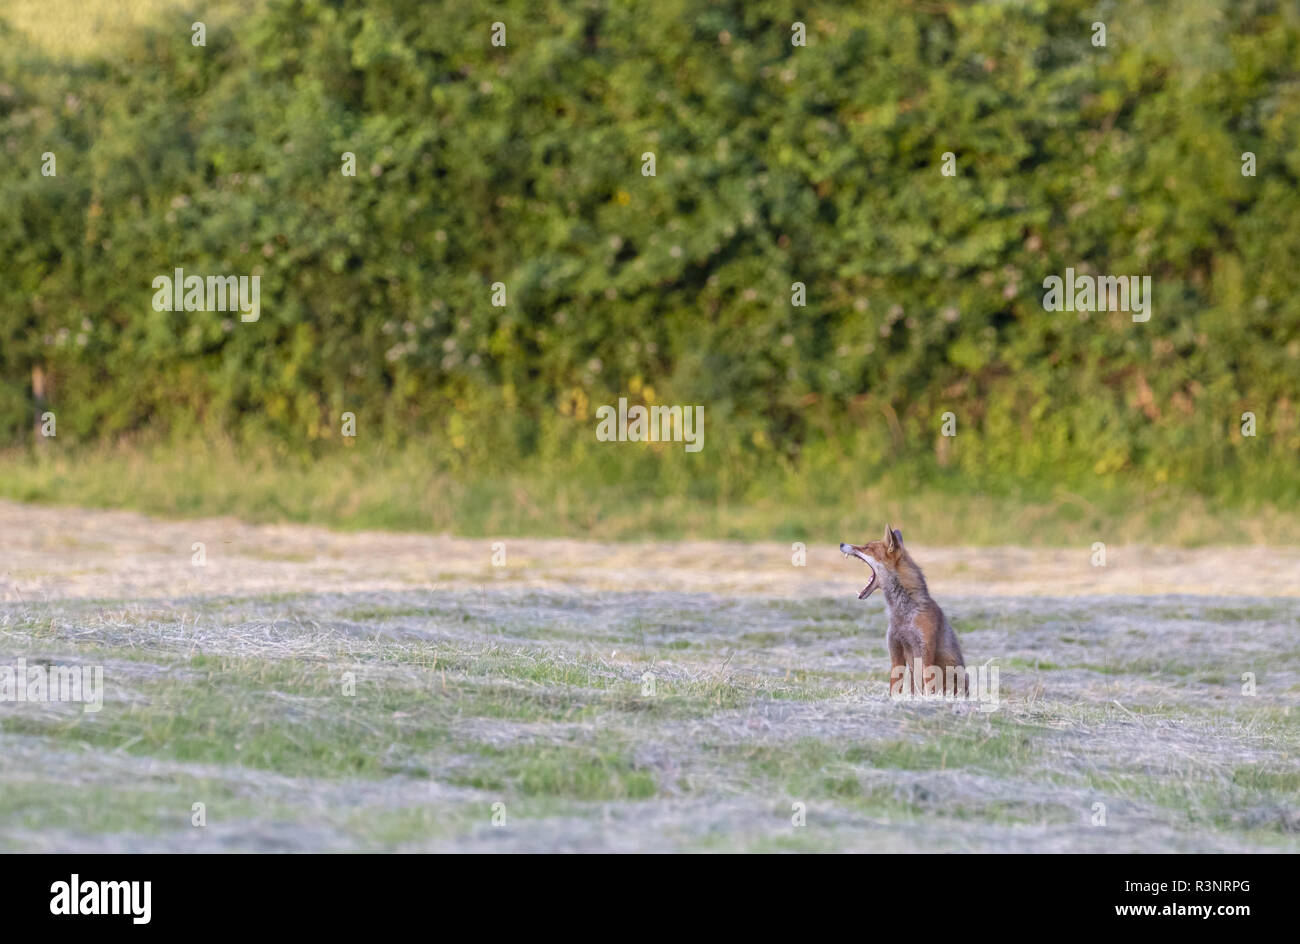 Red fox (Vulpes vulpes) yanning, Engalnd - Stock Image